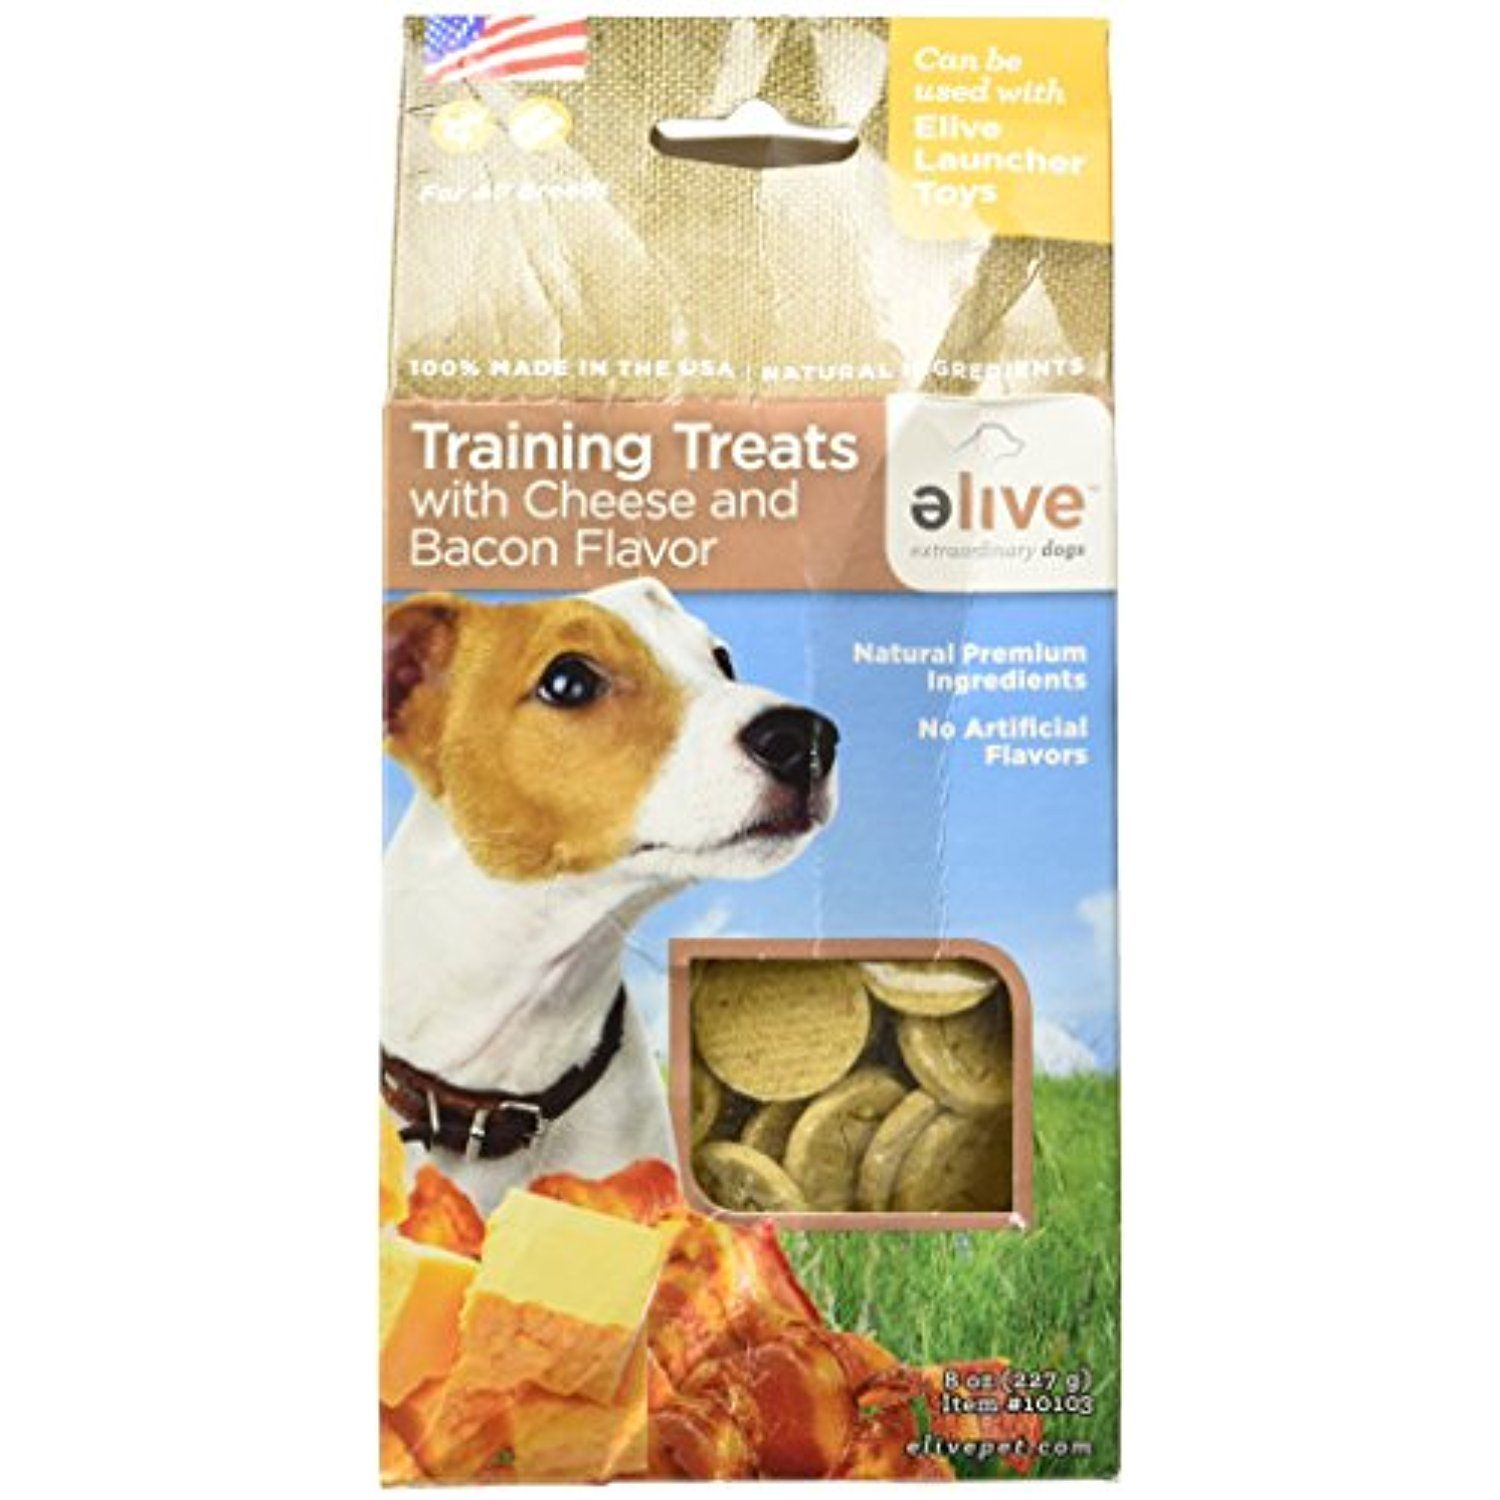 Elive Dog Training Treats Cheese And Bacon Flavor Delicious